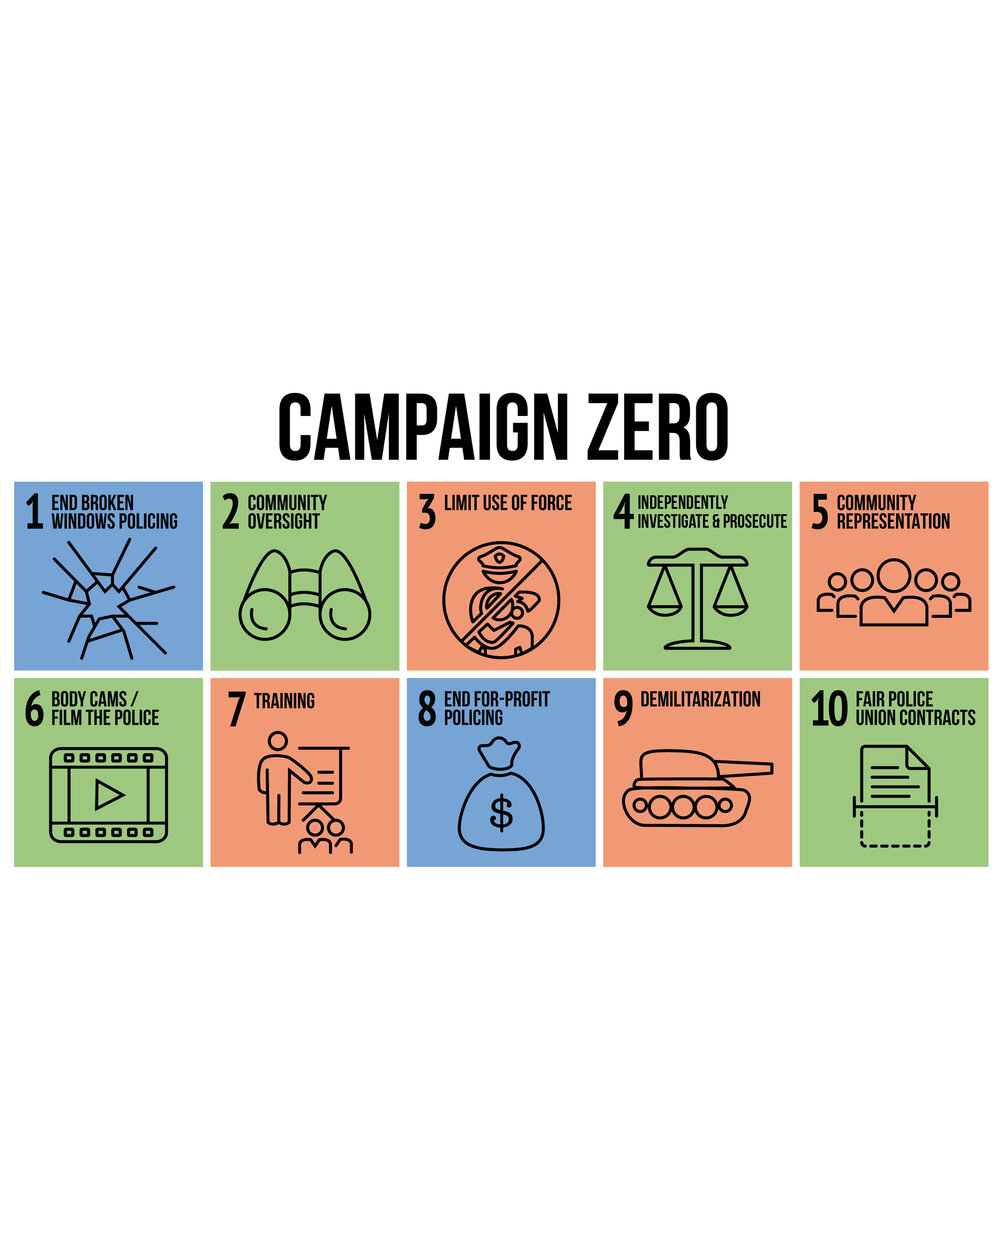 - Campaign ZeroAn organization utilizing research-based policy solutions to end police brutality